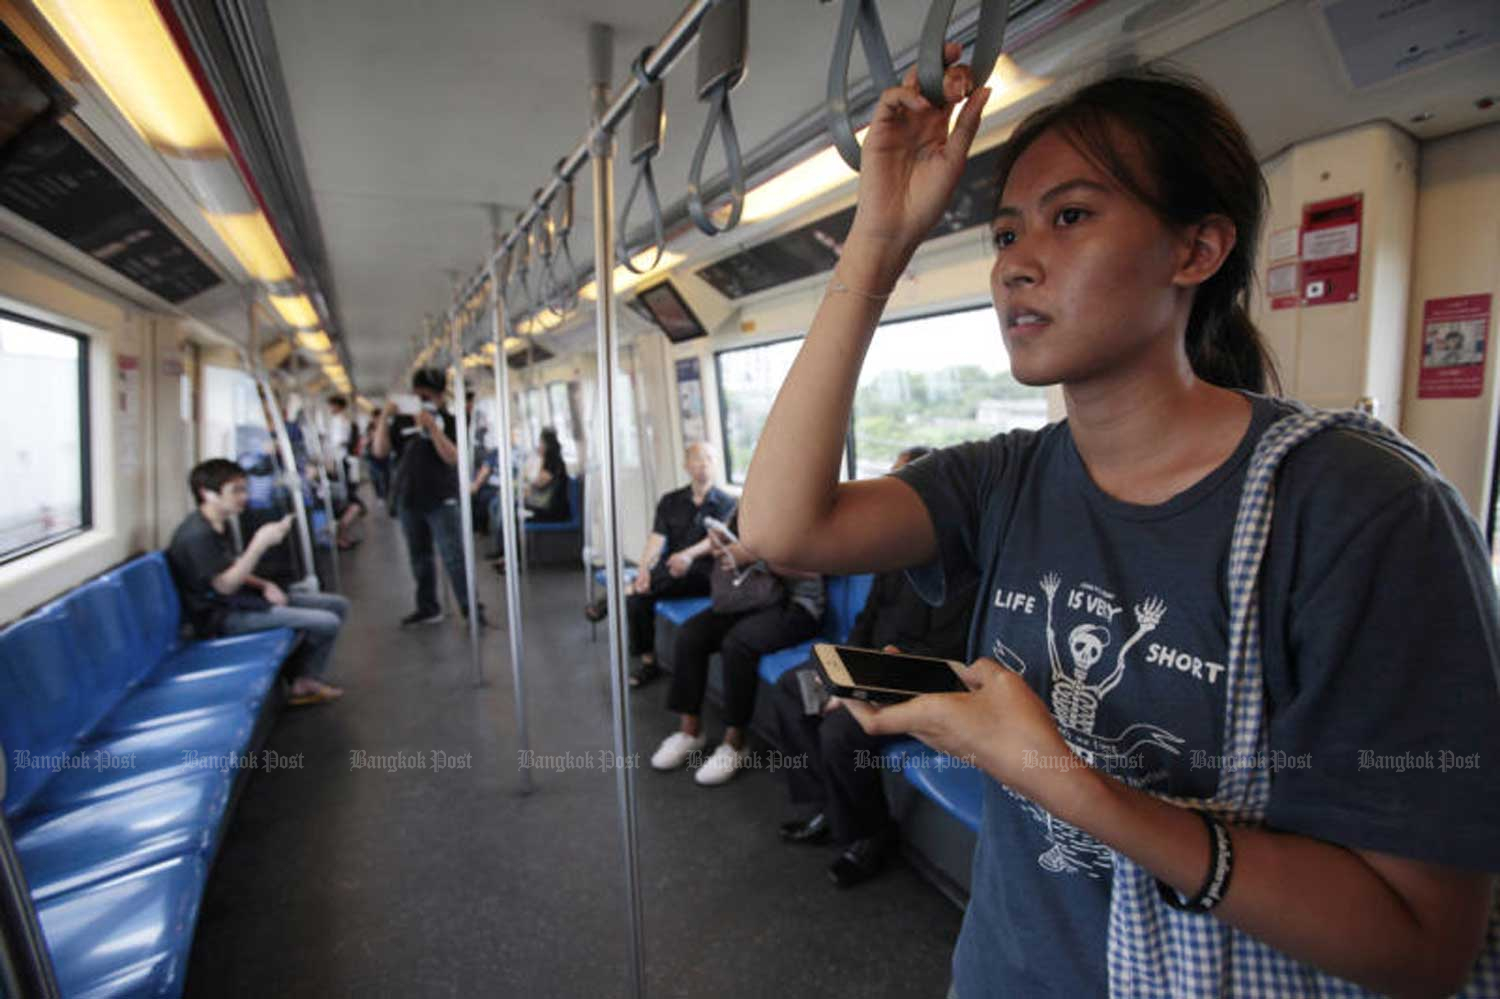 Prime Minister Prayut Chan-o-cha has quashed the proposal to introduce a 15-baht flat-rate fare on state-run electric train routes. (Bangkok Post file photo)